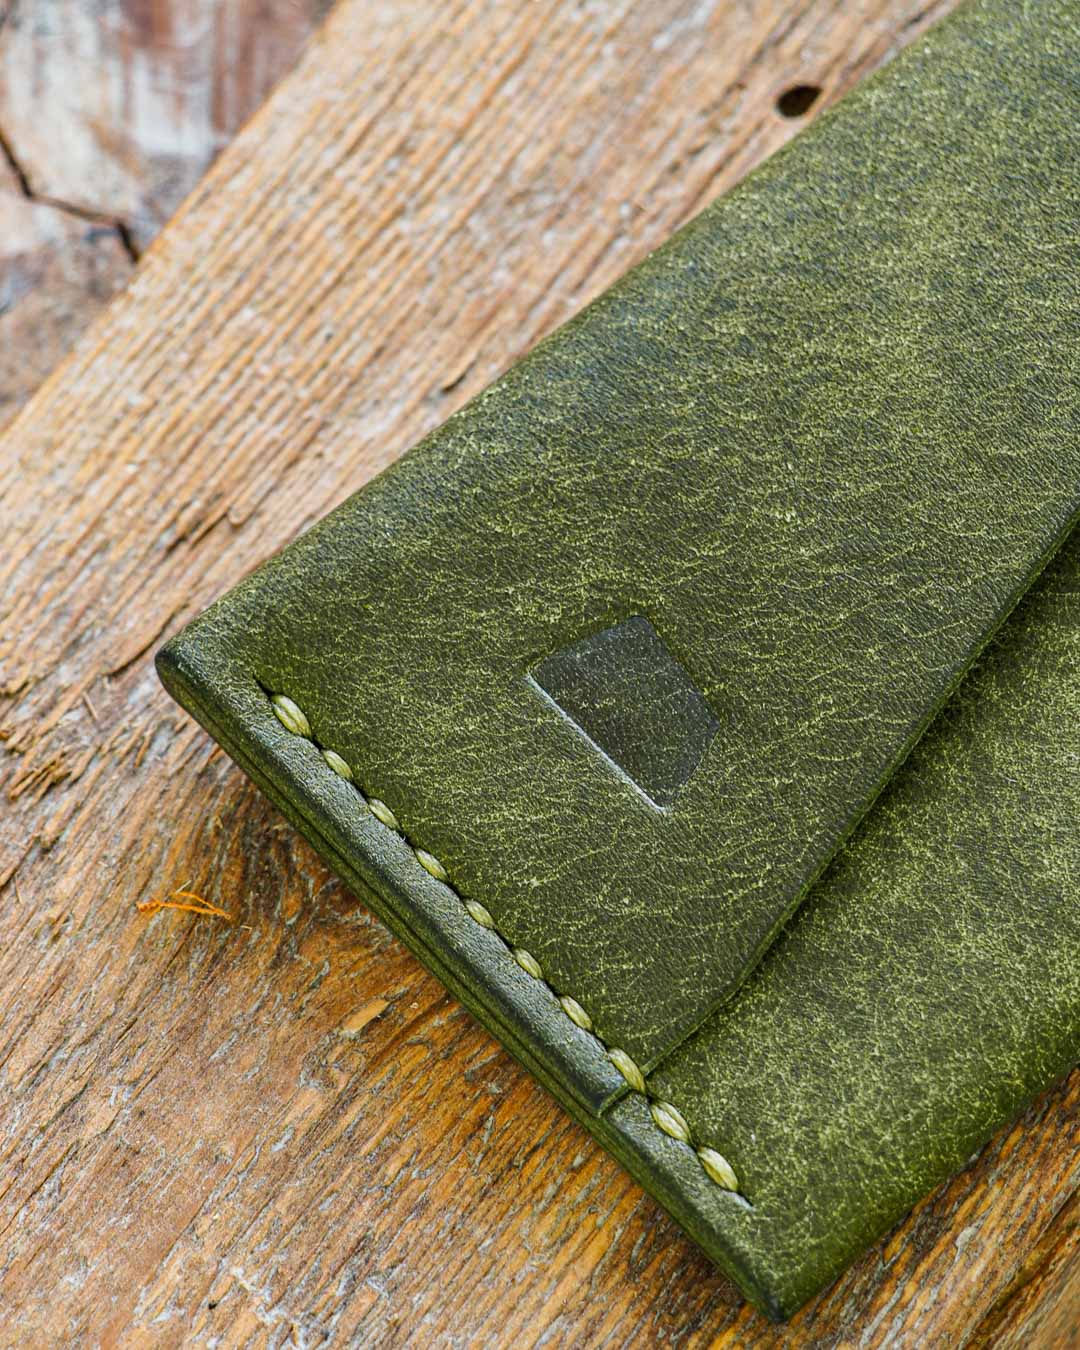 Luava handmade leather wallet handcrafted card holder cardholder made in finland vortex pueblo olive front deatil angle